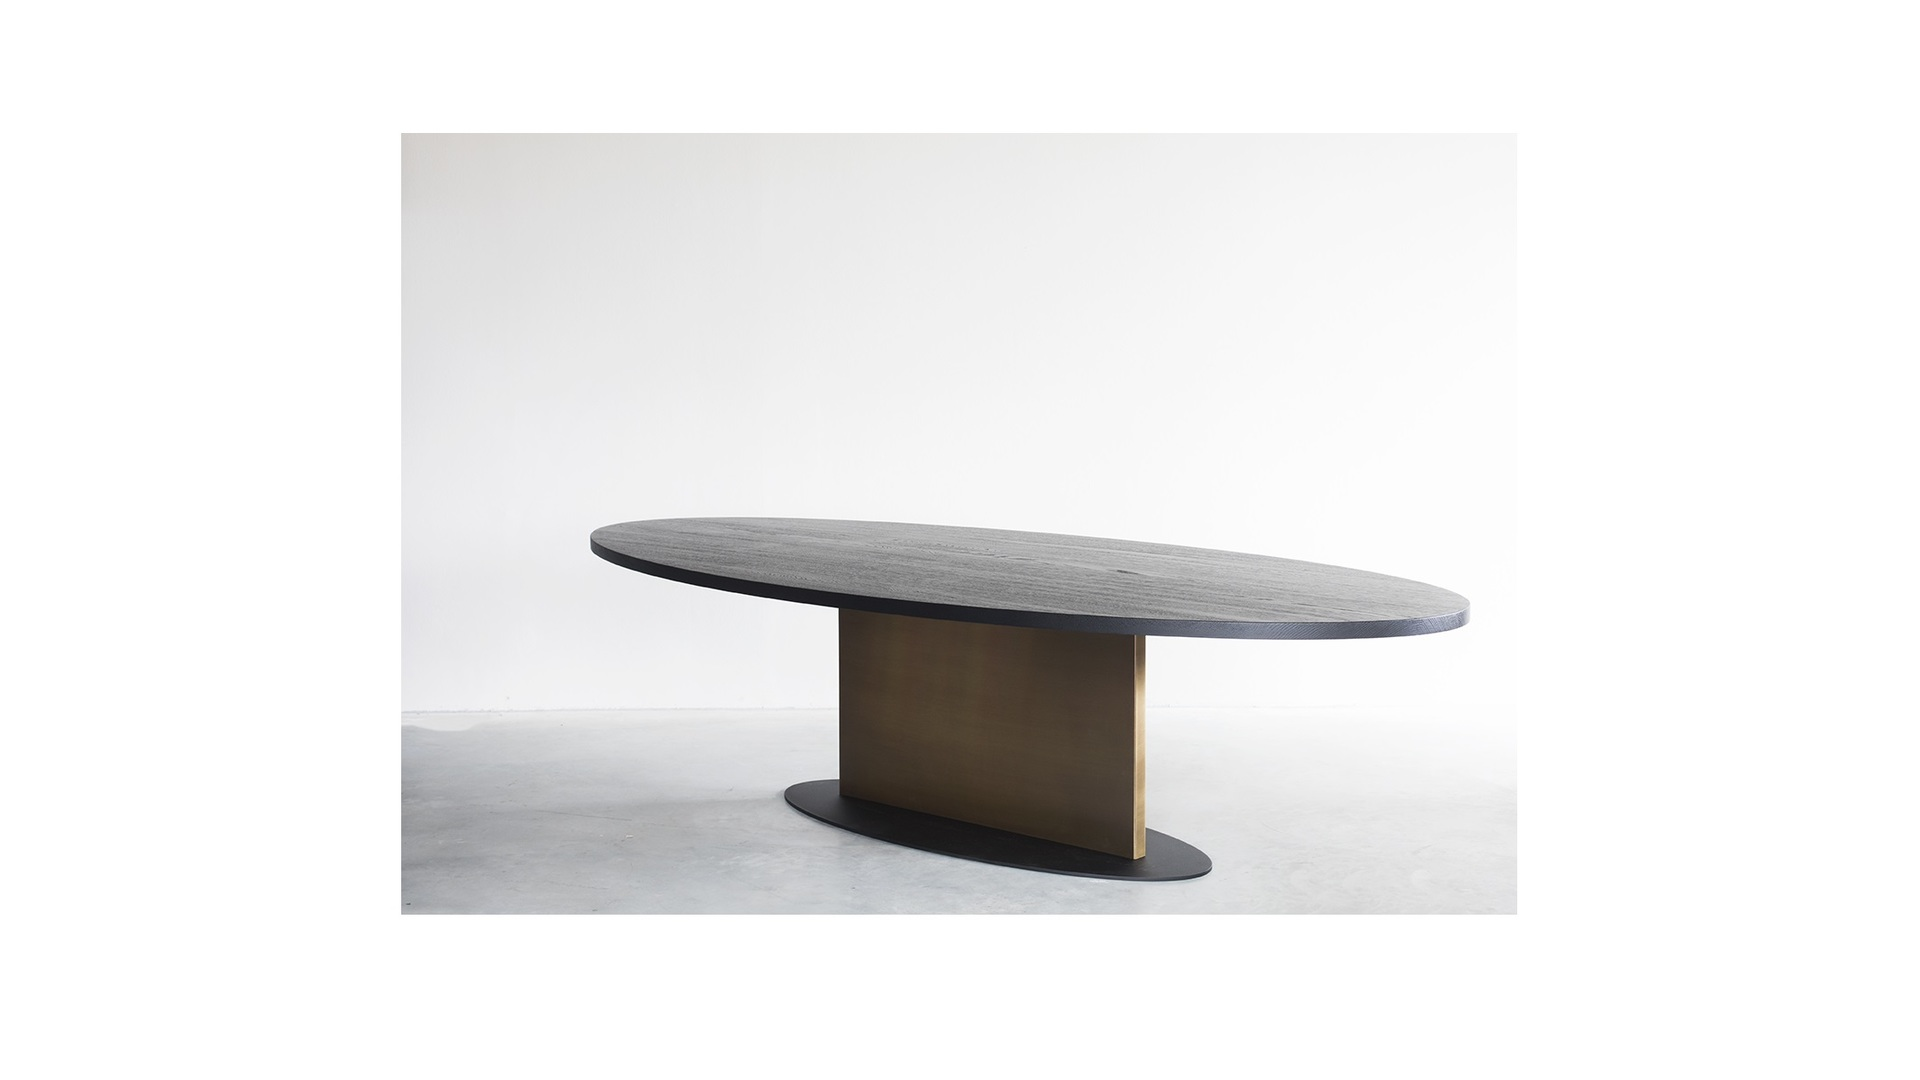 Opium oval table with brass (1) klein.jpg